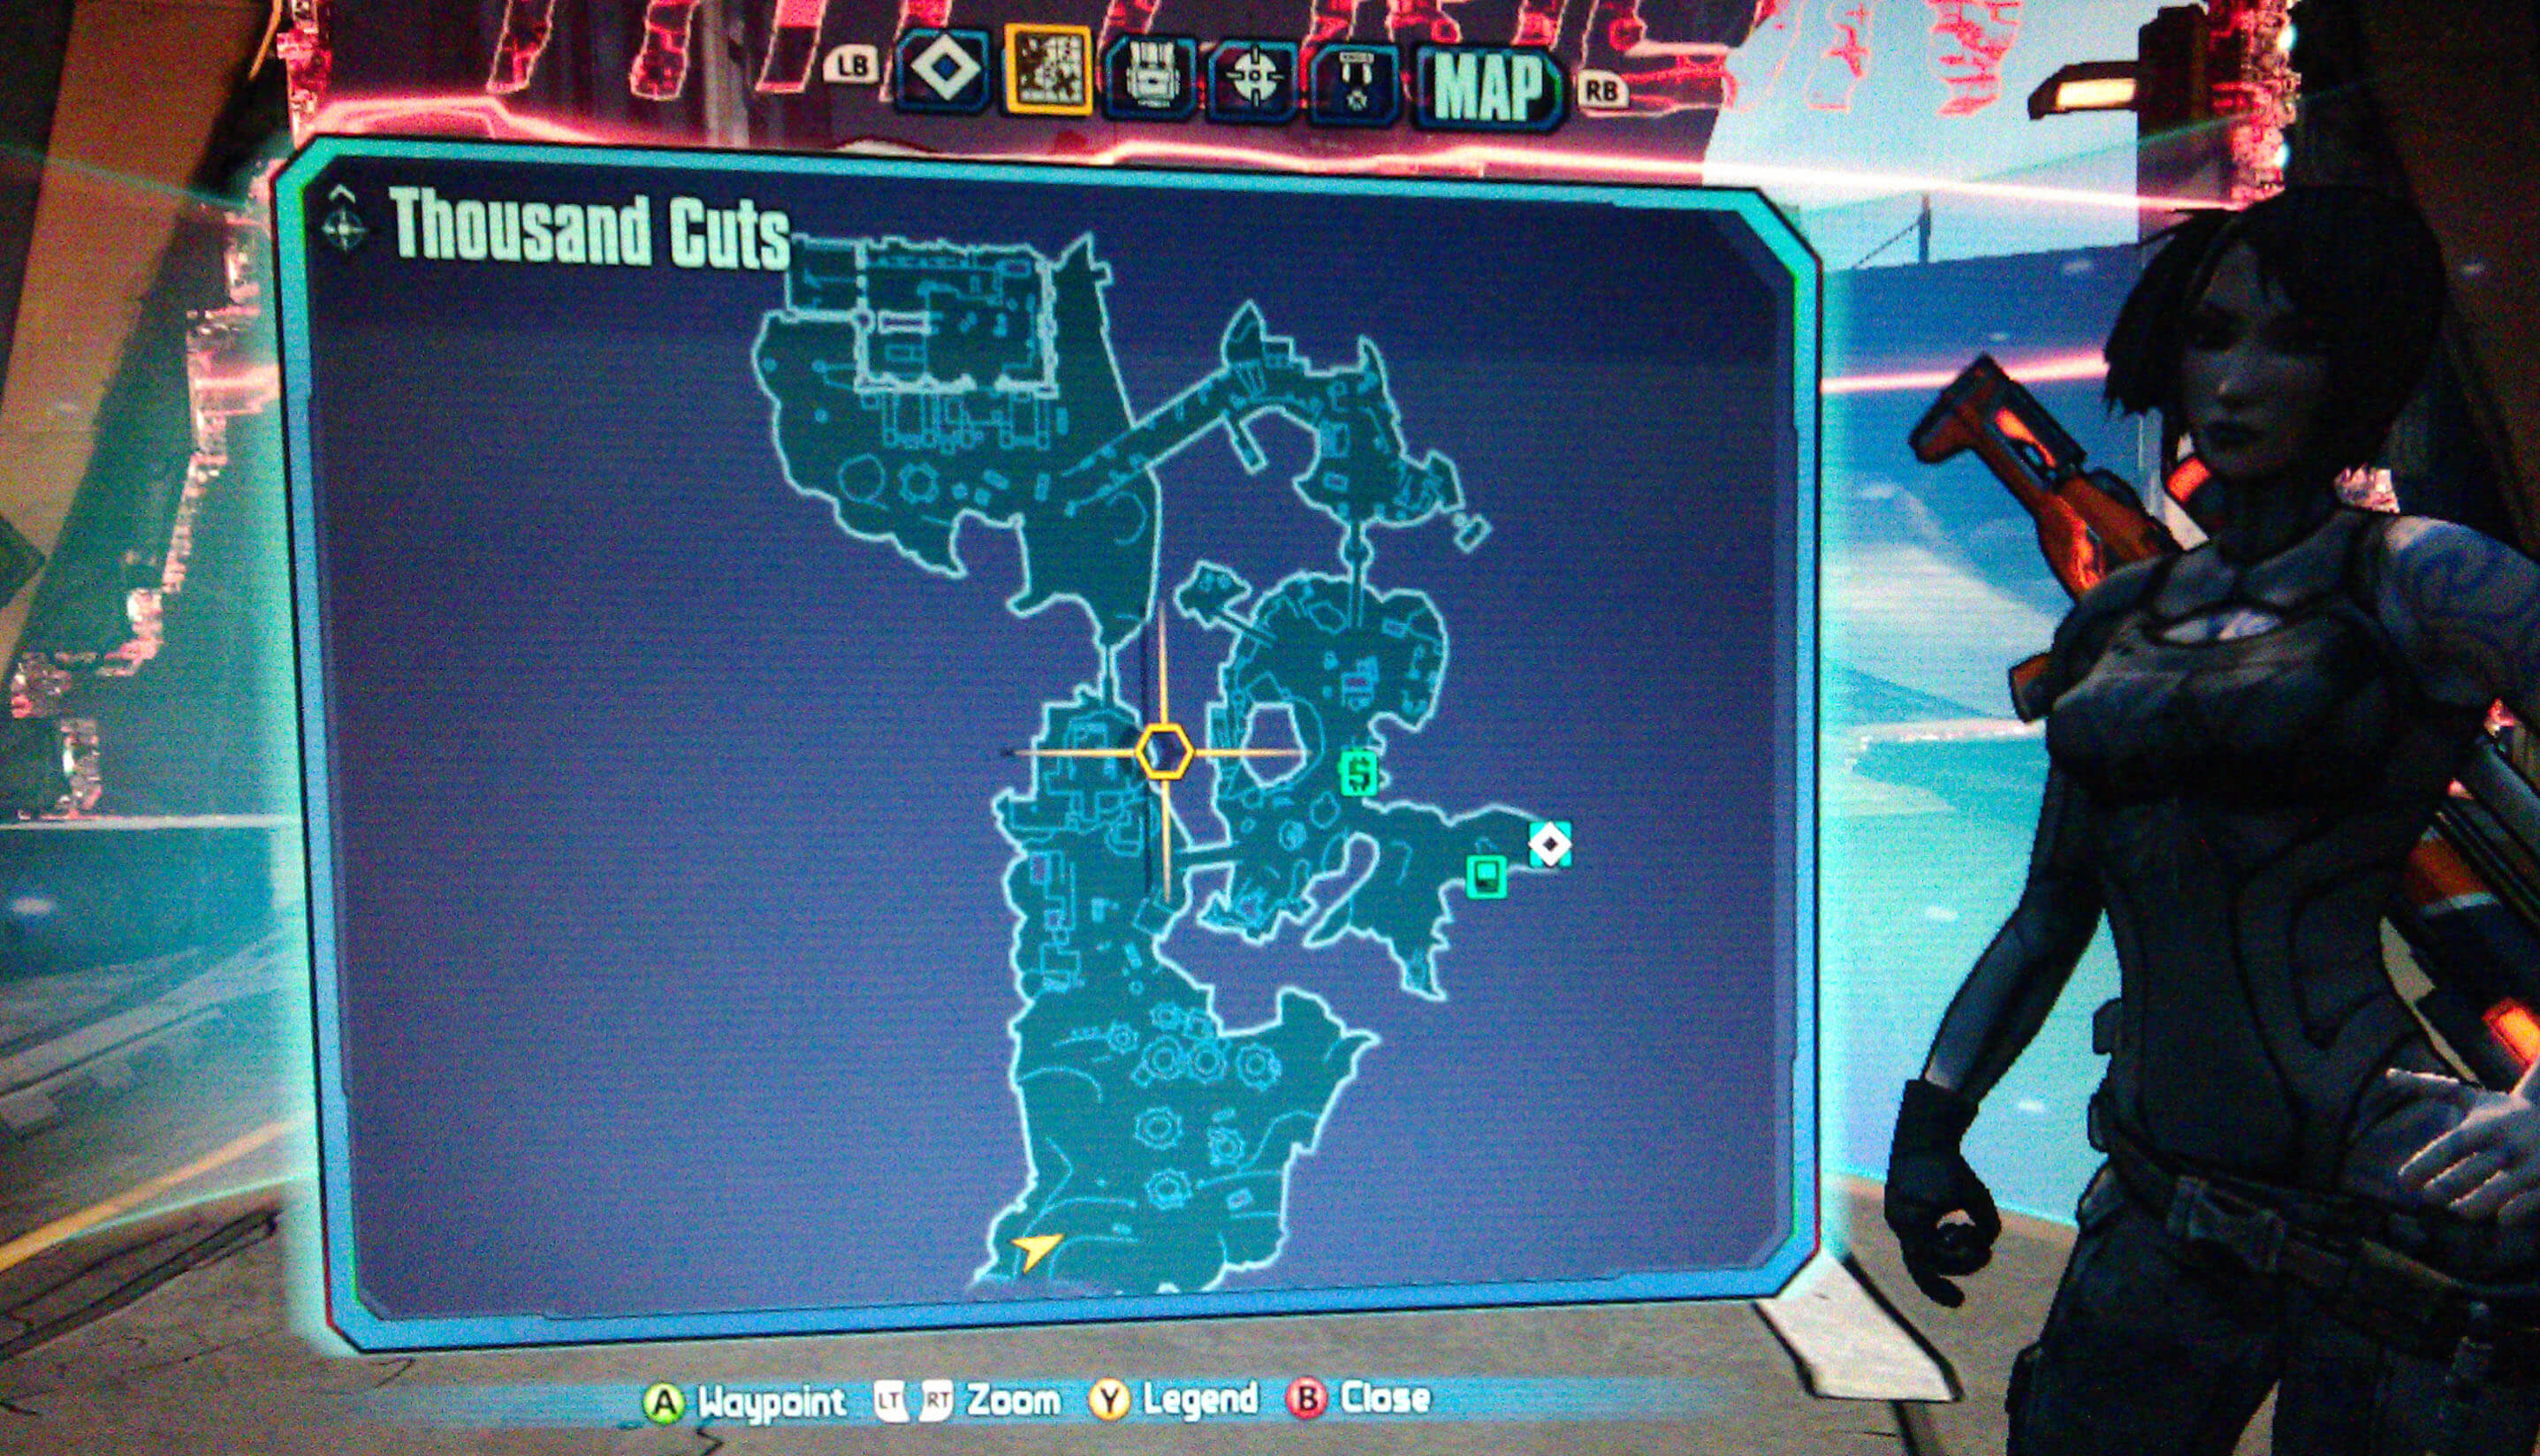 Borderlands 2 Thousand Cuts Walkthrough - VGFAQ Borderlands 2 Walkthrough